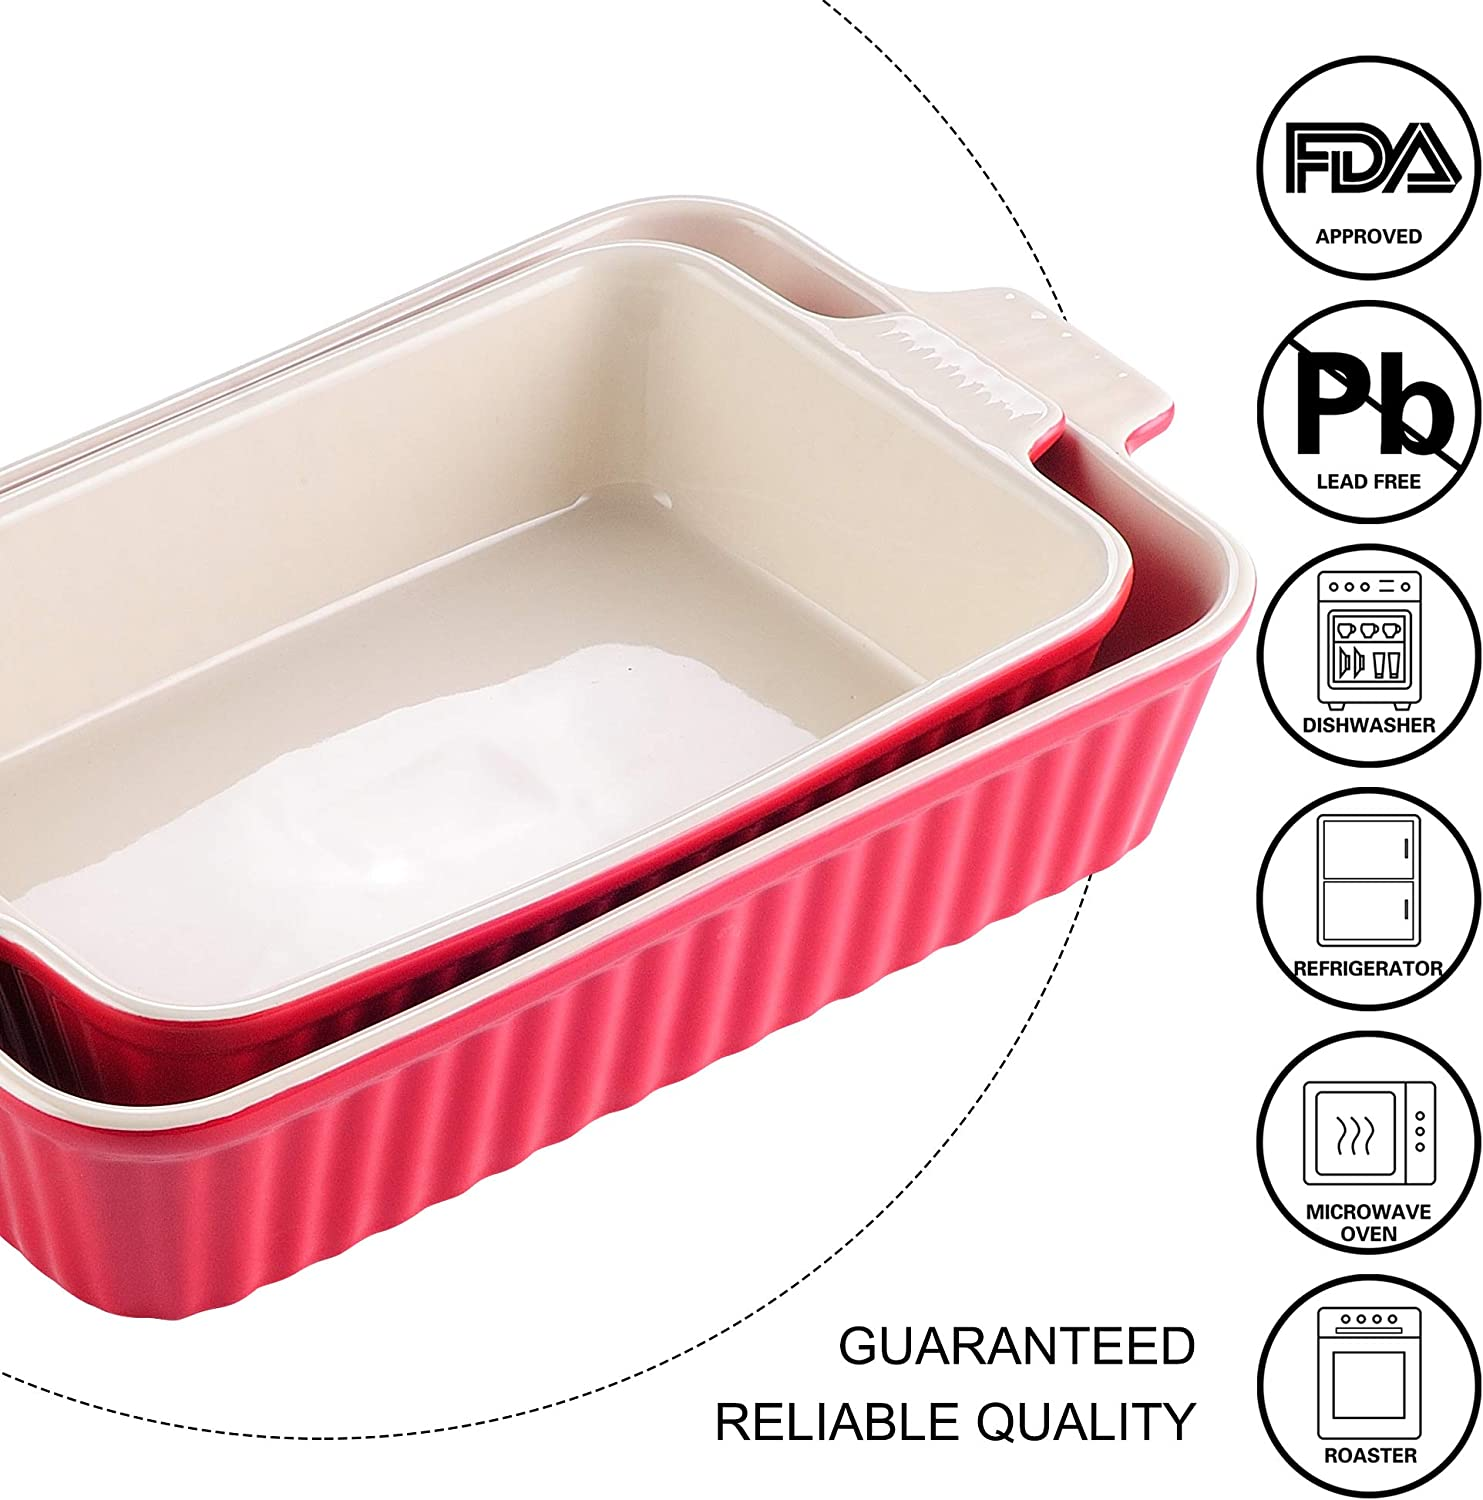 Malacasa Series Bake Rectangular Baking Dish Set Of 2 12 13 3 Oven To Table Baking Dish With Ceramic Handles Ideal For Lasagne Pie Casserole Tapas Red Amazon Co Uk Kitchen Home